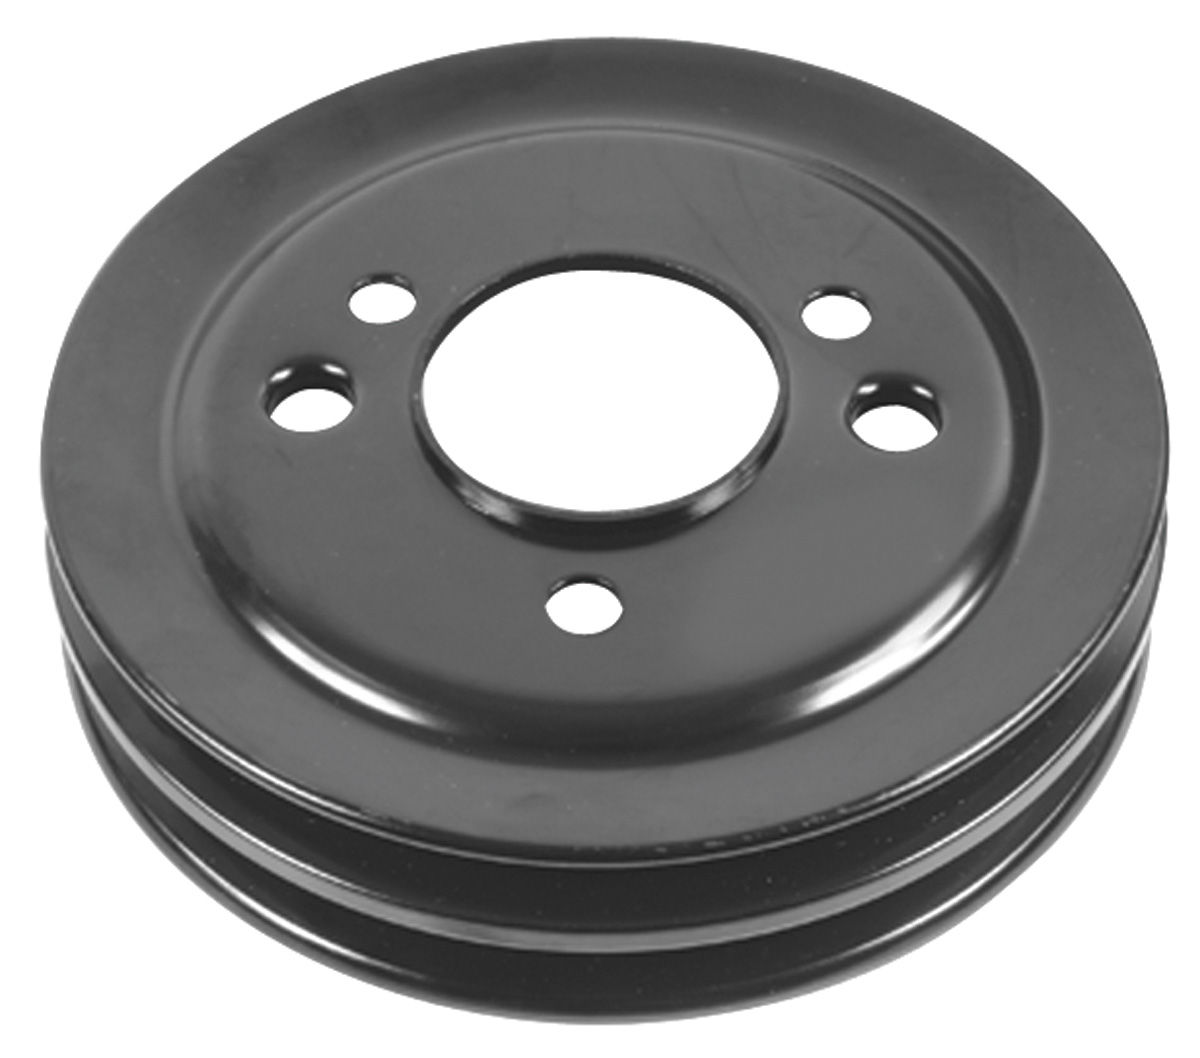 Block Pulley : Chevelle crank pulley reproduction big block groove w shp for years